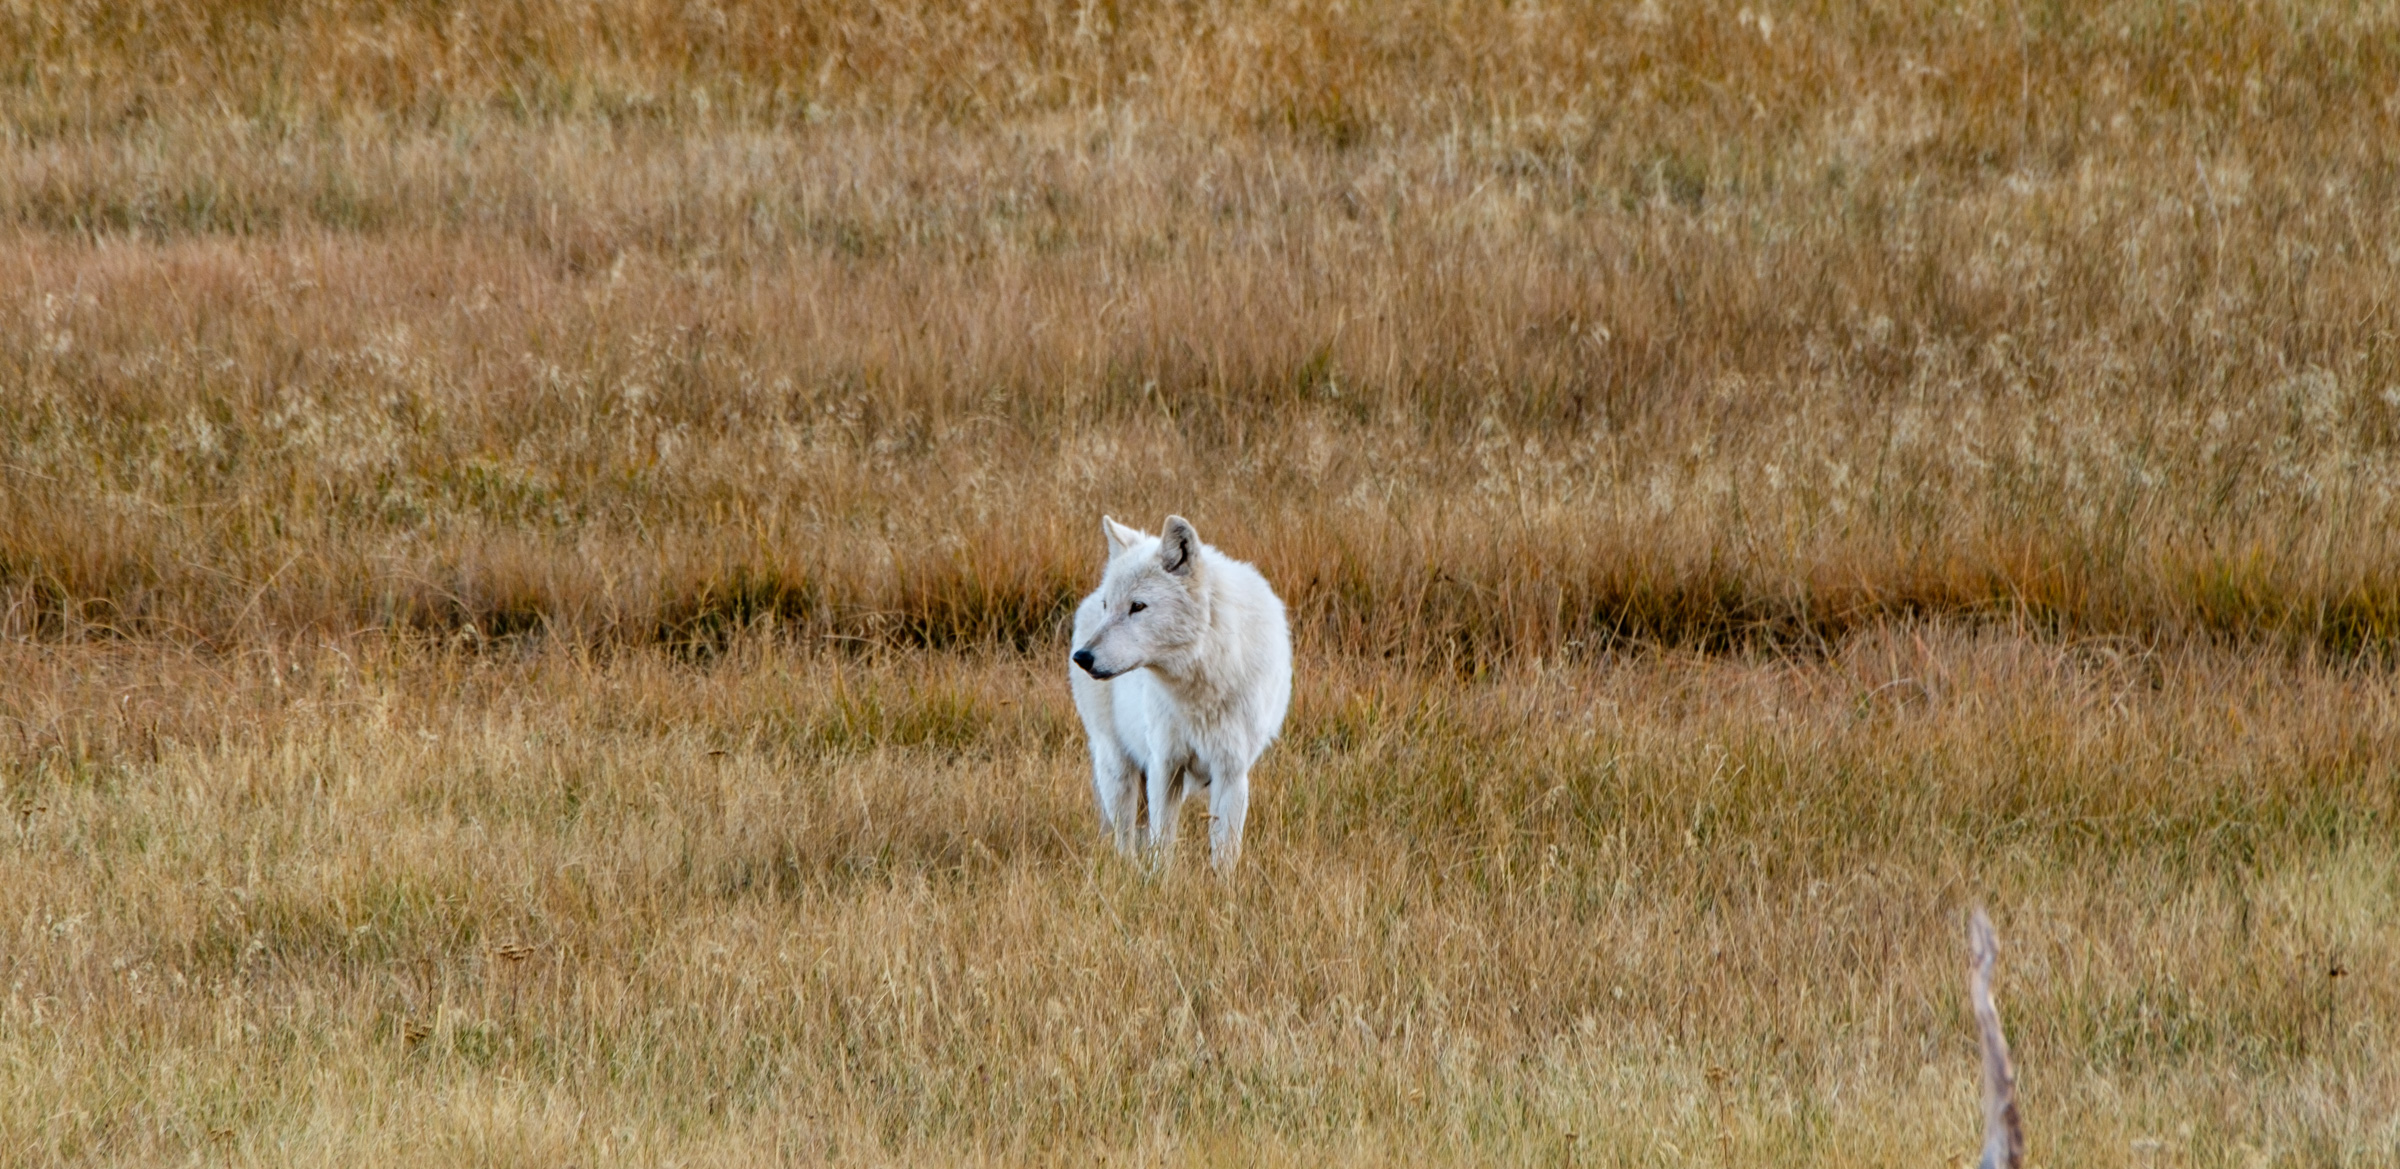 Wolves are not easy to spot in the park, so you can imagine how excited we were to stumble upon this beautiful white wolf one late afternoon.